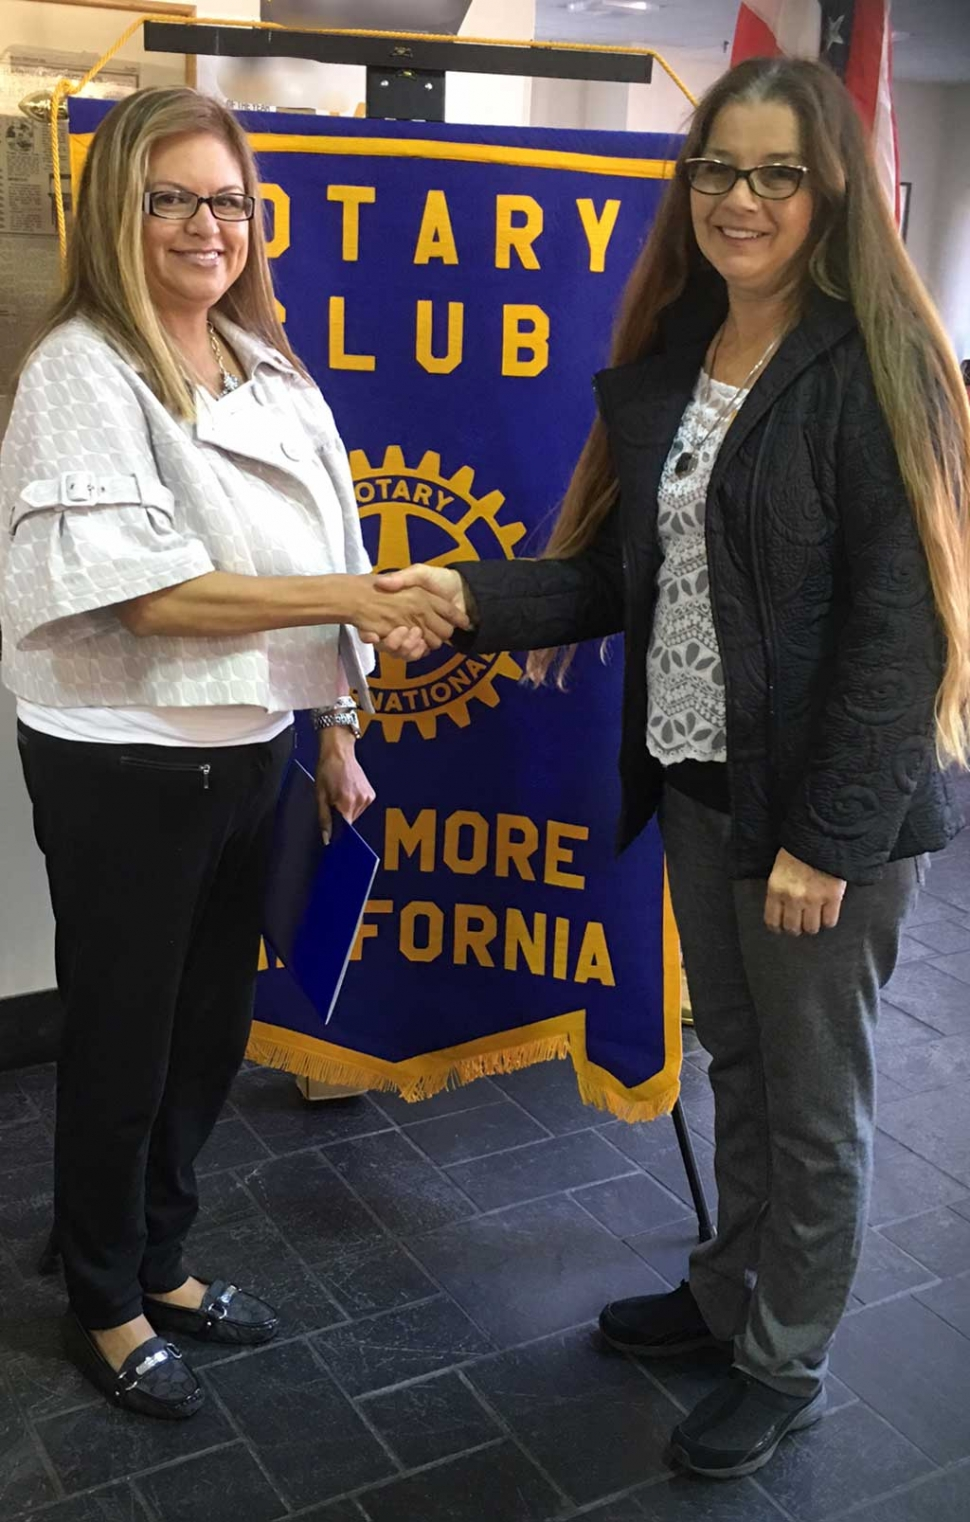 The newest member to the Rotary Club of Fillmore is Ari Larson inducted by President Julie Latshaw